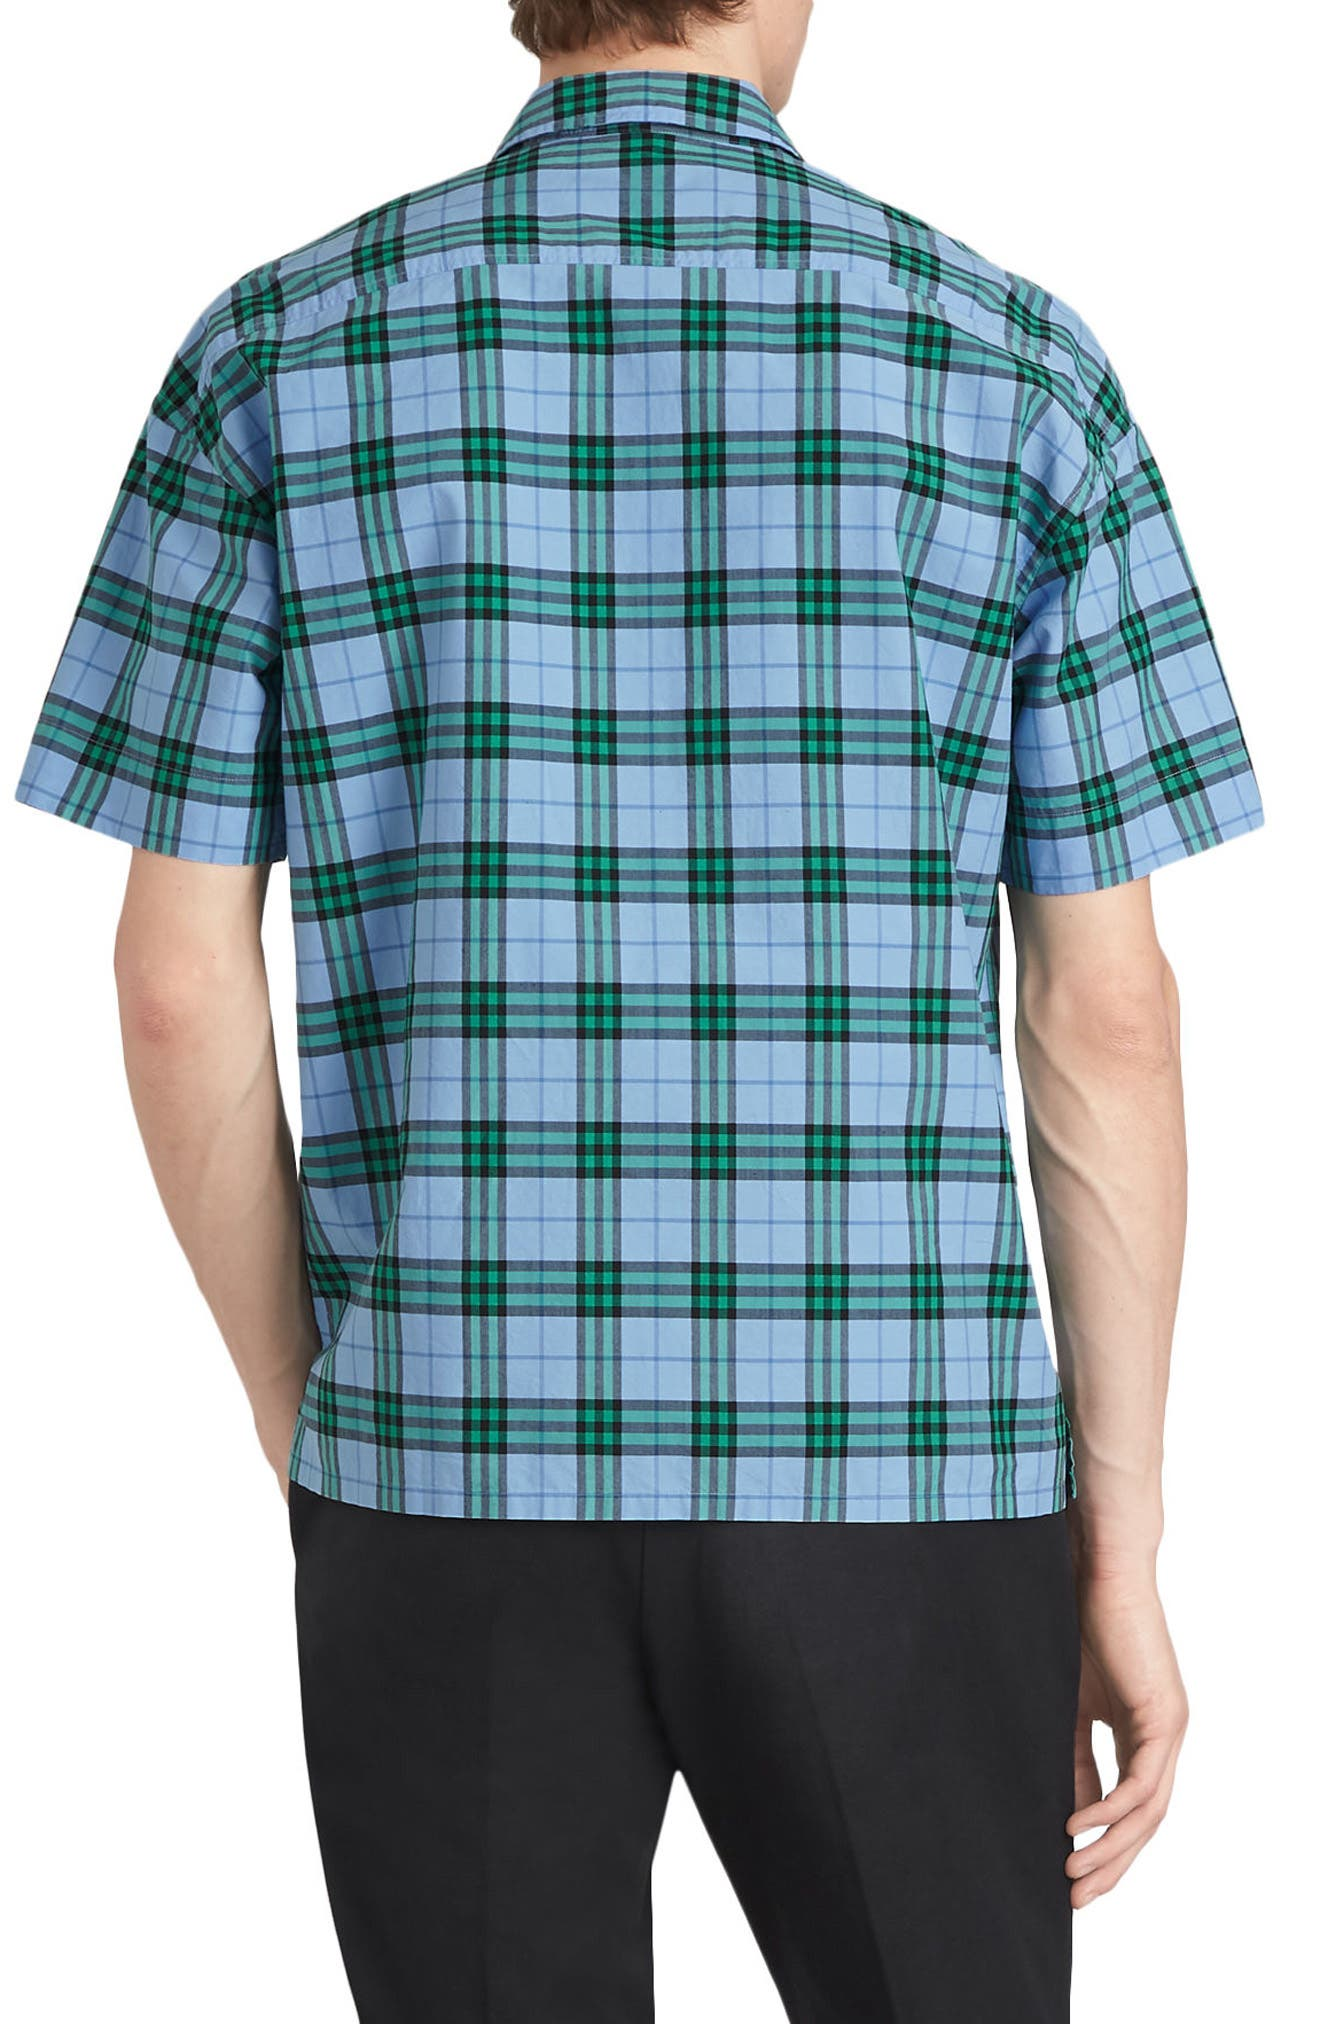 Harely Check Camp Shirt,                             Alternate thumbnail 2, color,                             400